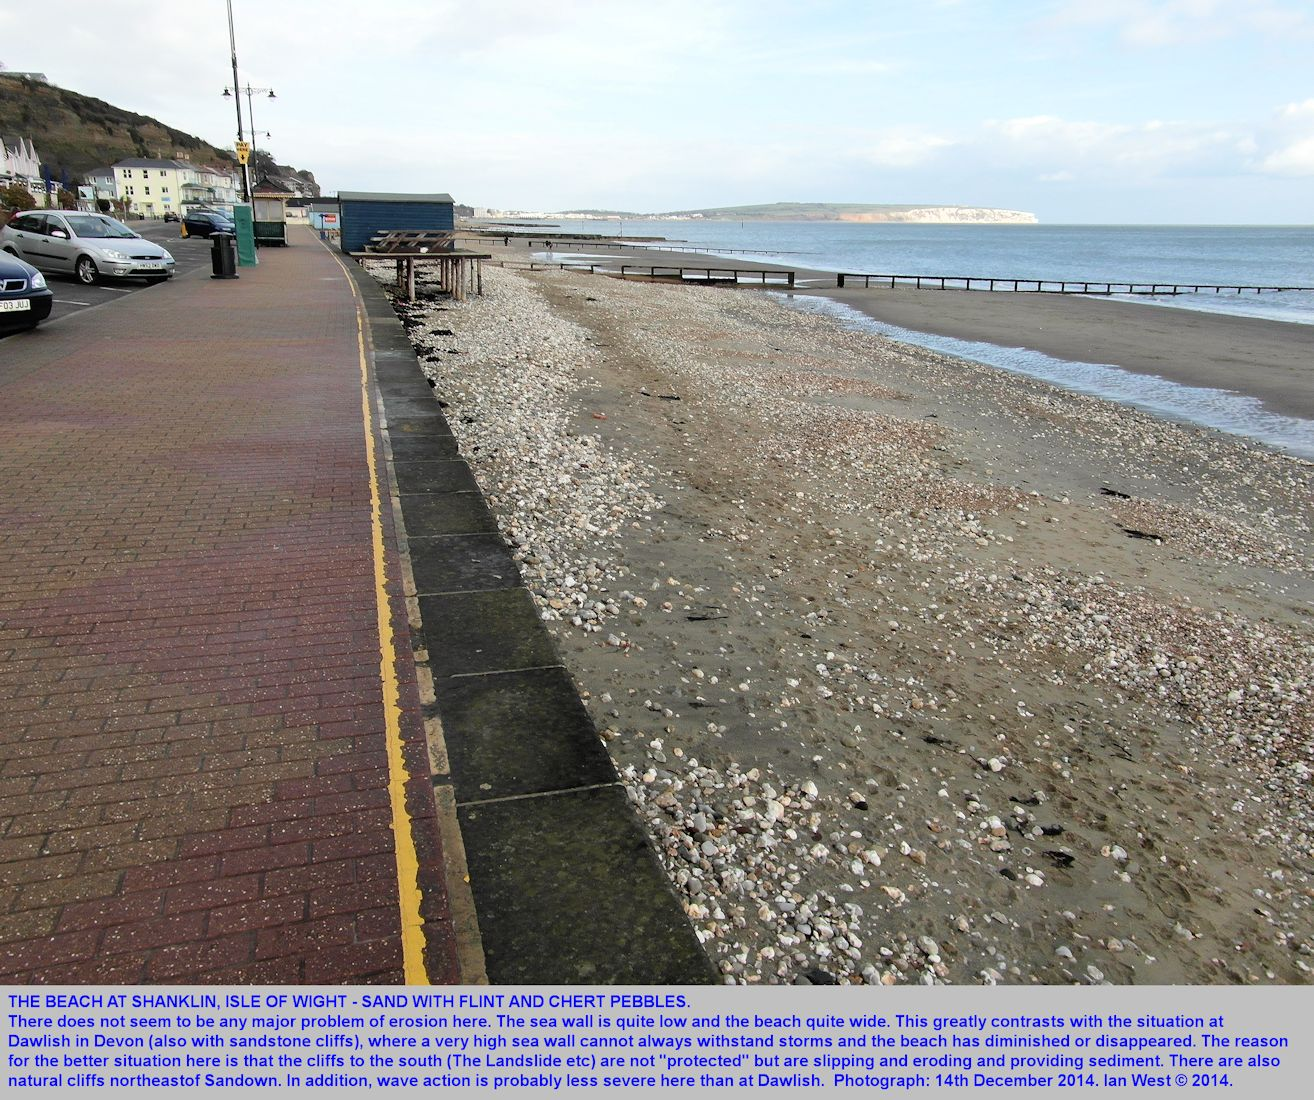 Shanklin, Isle of Wight, beach sand and pebbles, photographed 14th December 2014, Ian West